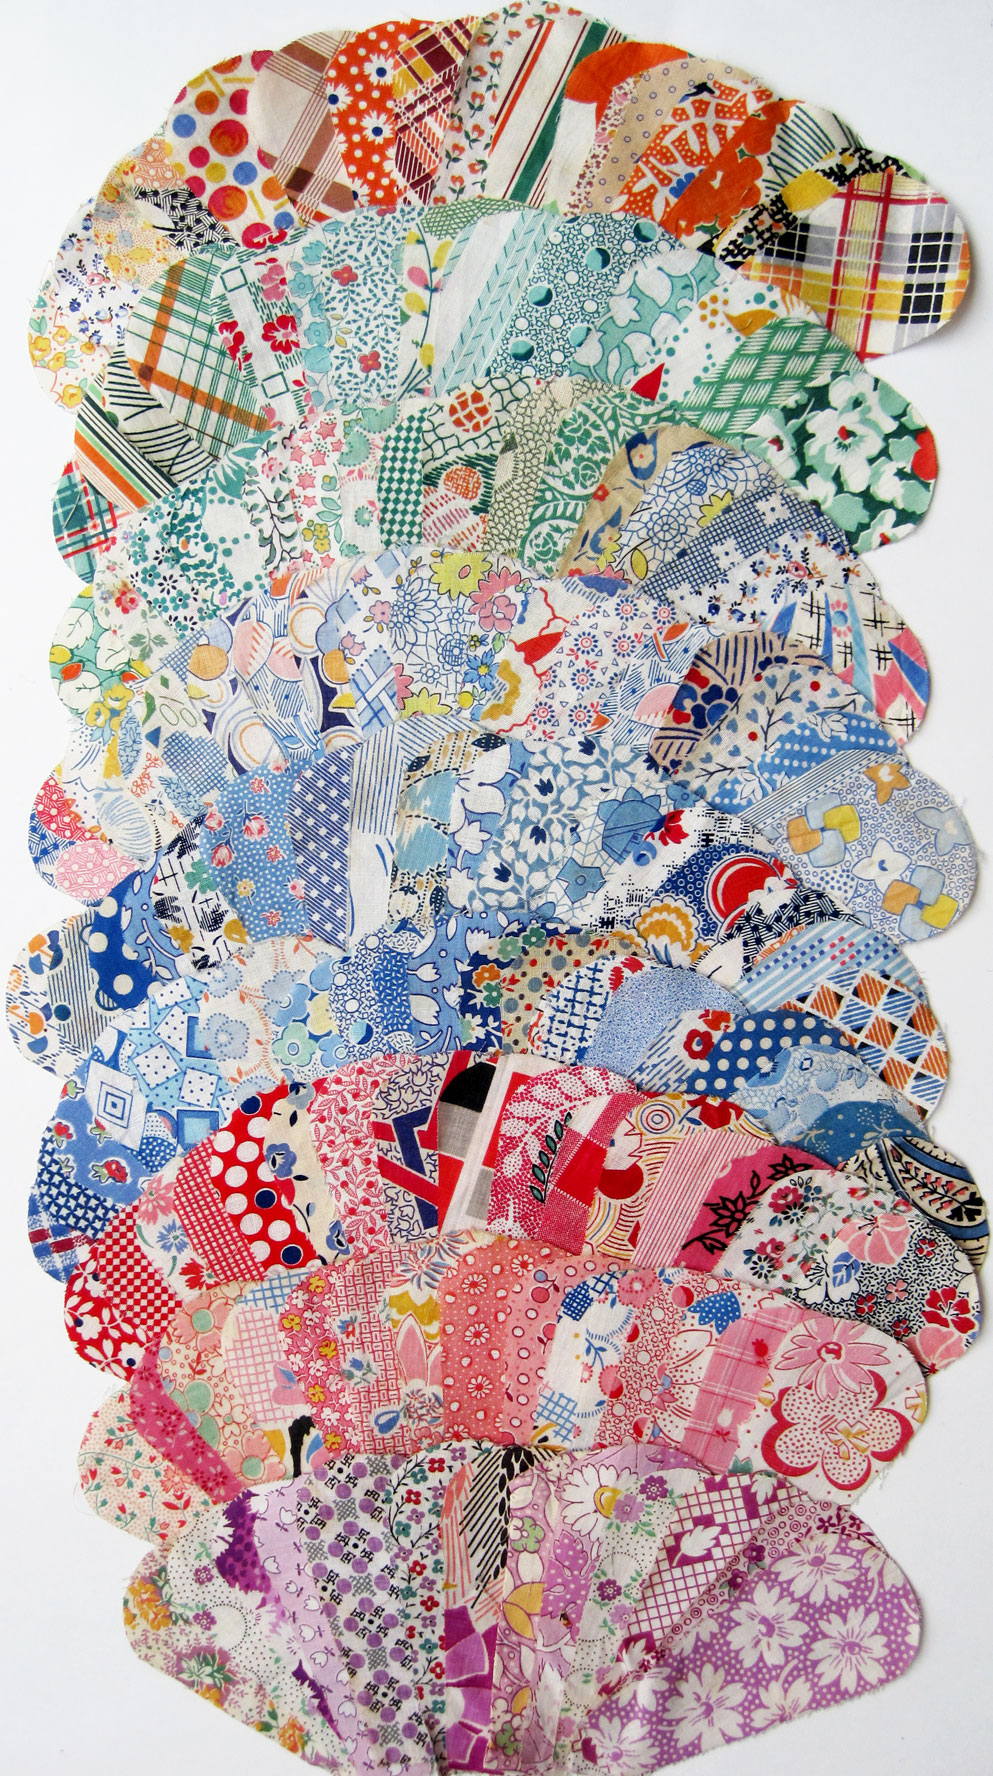 Quilt-Pieces-From-Ann